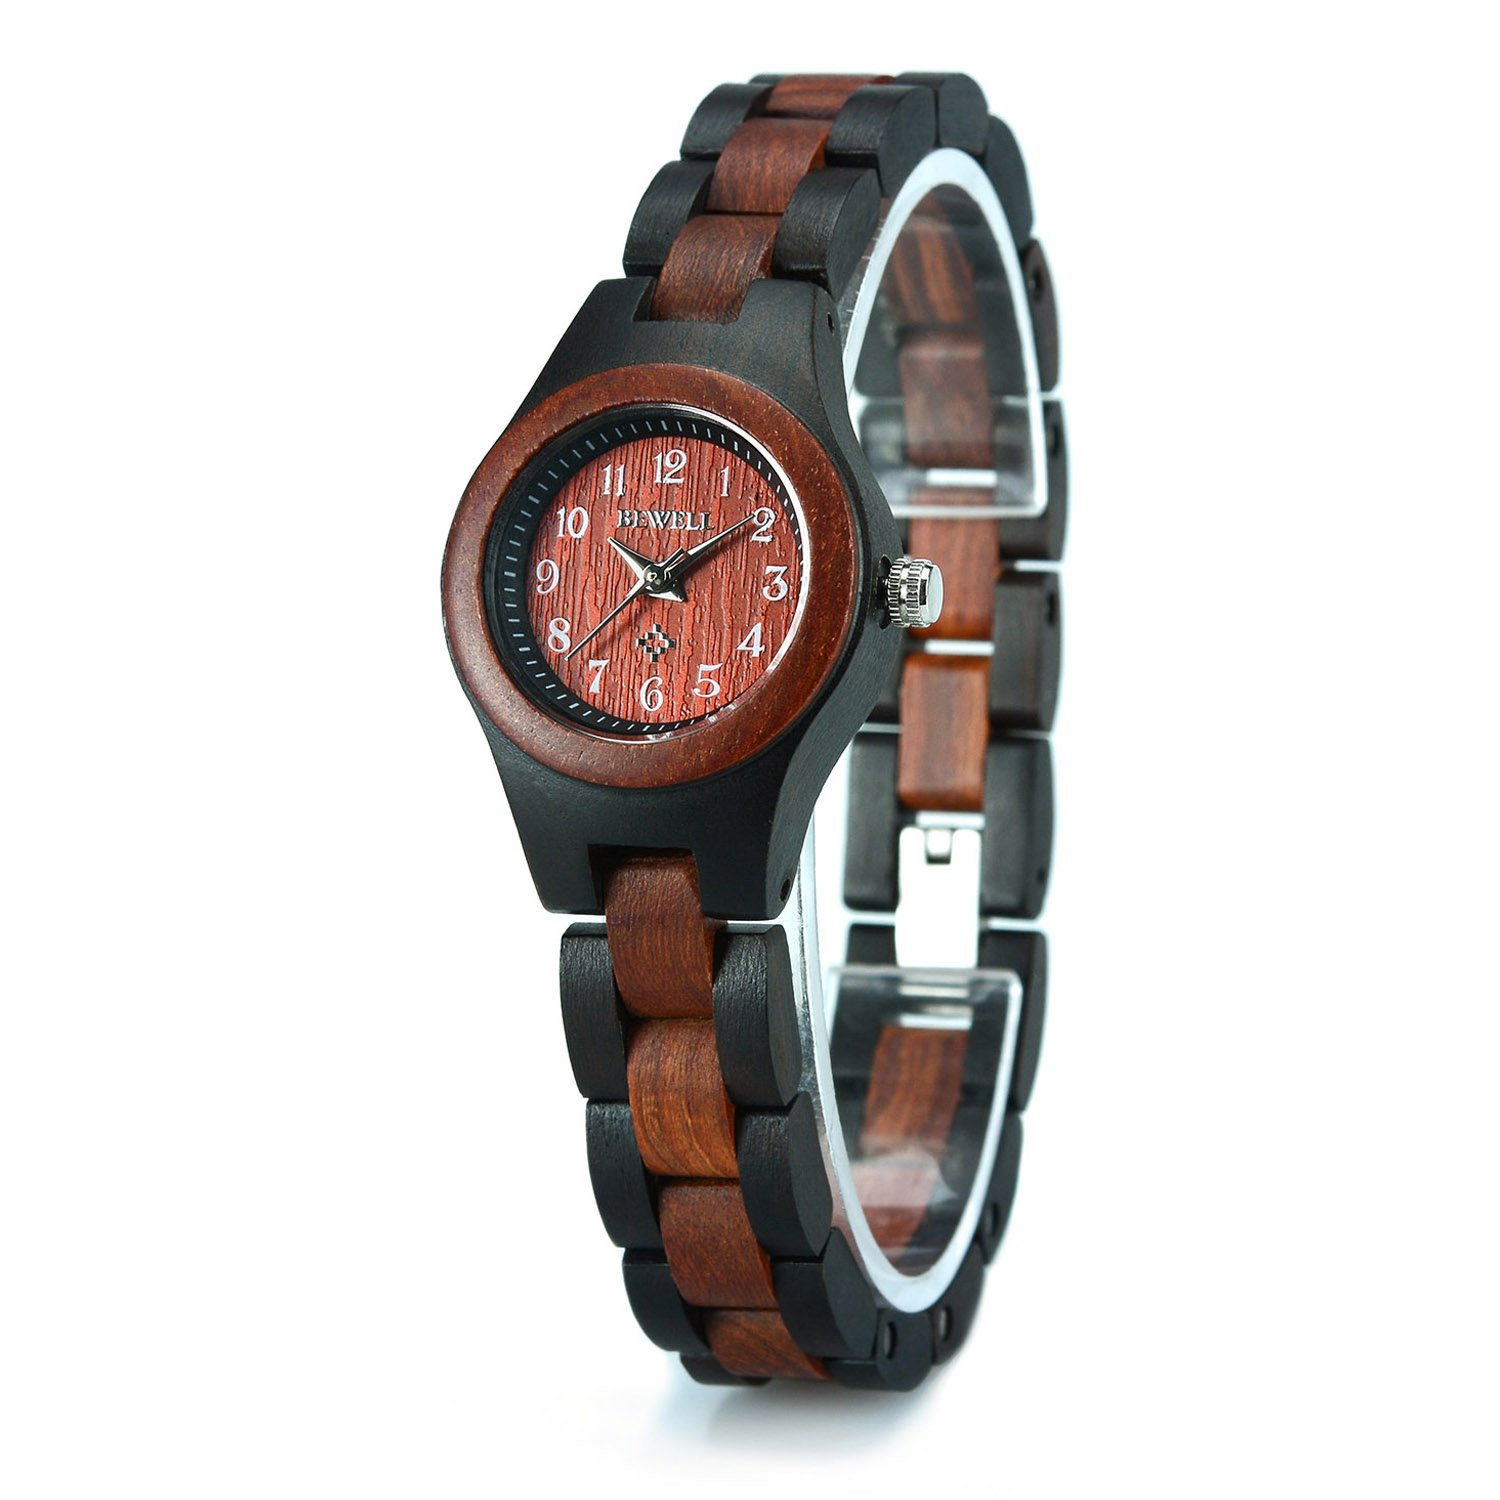 Bewell Wood Watch Lightweight with Arabic Numeral Scale Wrist Watch for Women W123A (Black and Red Wood)